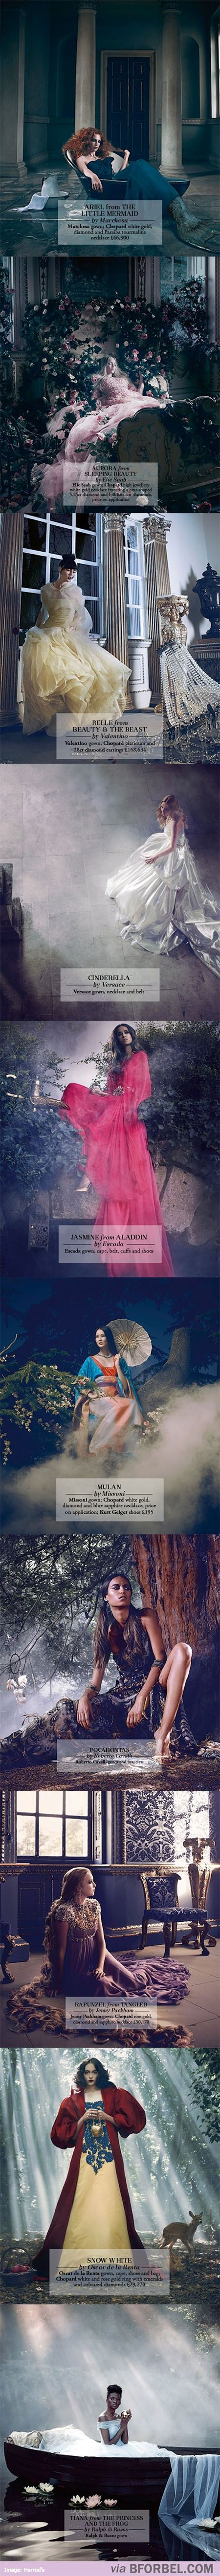 high-fashioned disney princesses from live delightfully